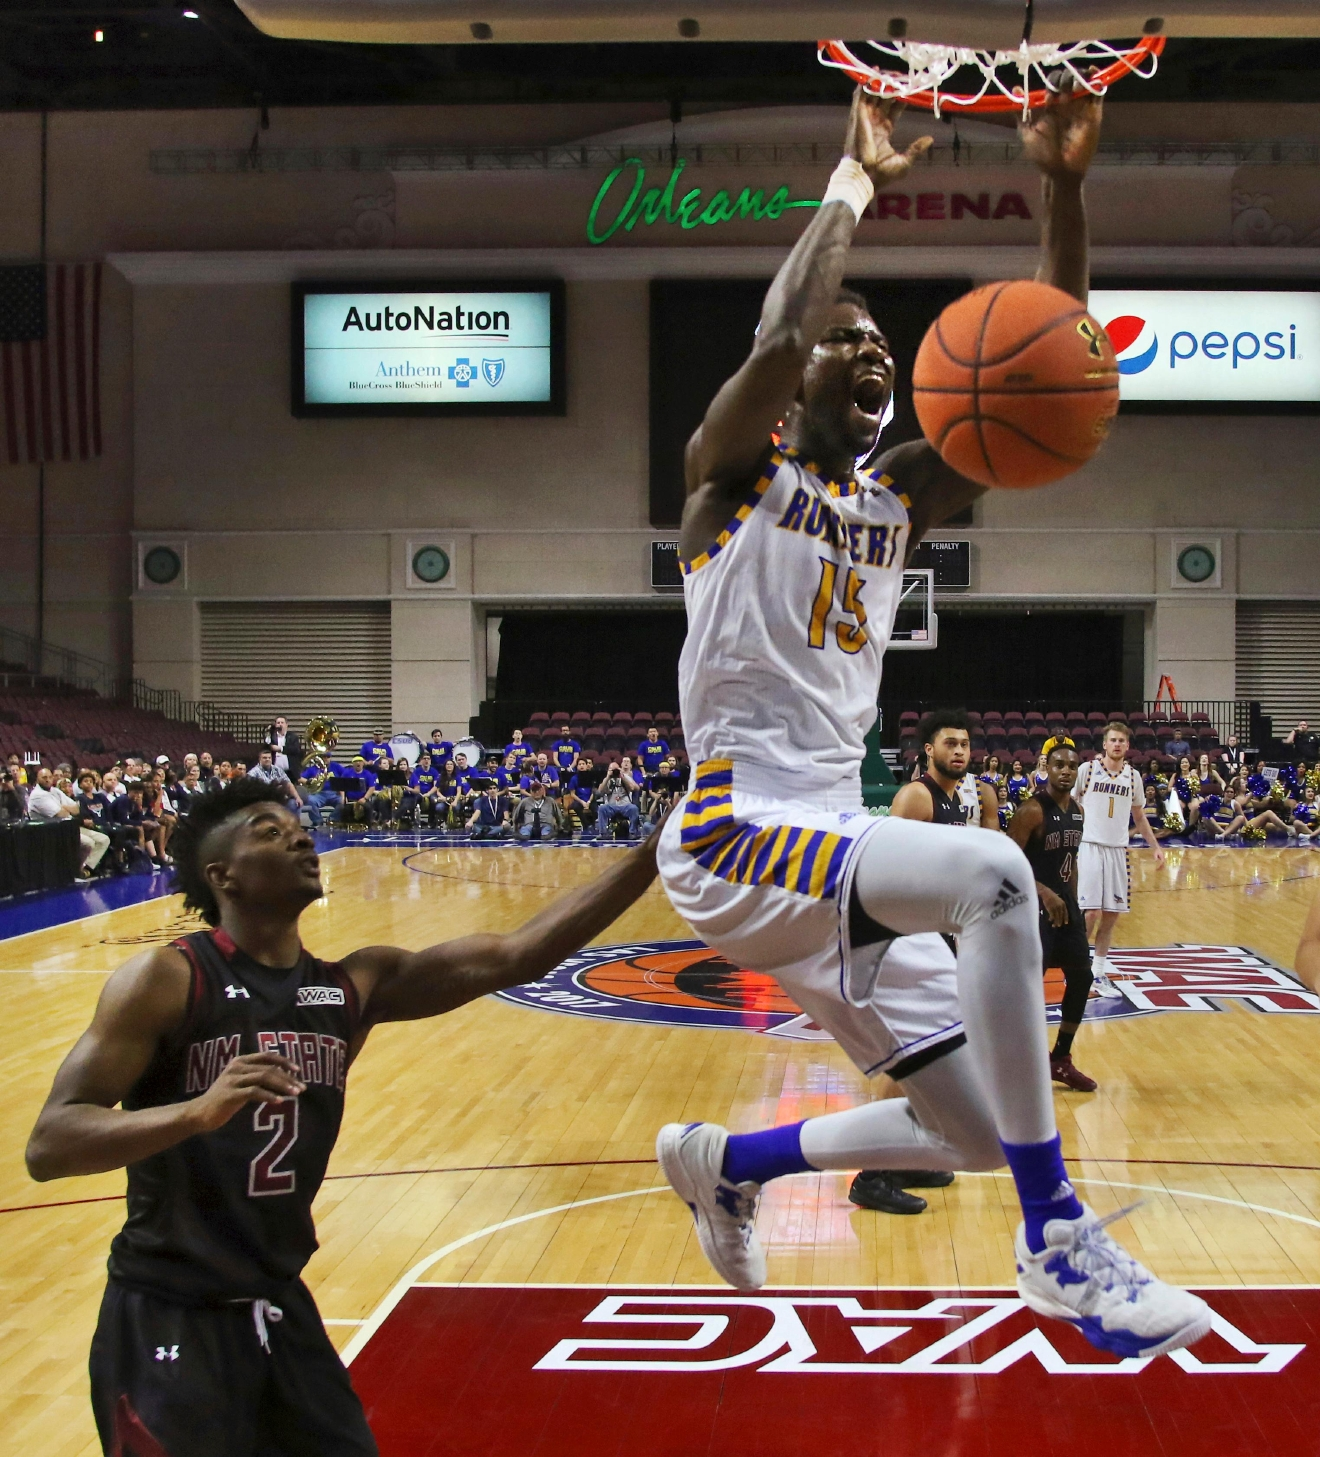 Cal State Bakersfield center Fallou Ndoye dunks on a fast break during the second half of an NCAA college basketball game in the final of the Western Athletic Conference tournament Saturday, March 11, 2017, in Las Vegas. New Mexico State won 70-60. (AP Photo/L.E. Baskow)